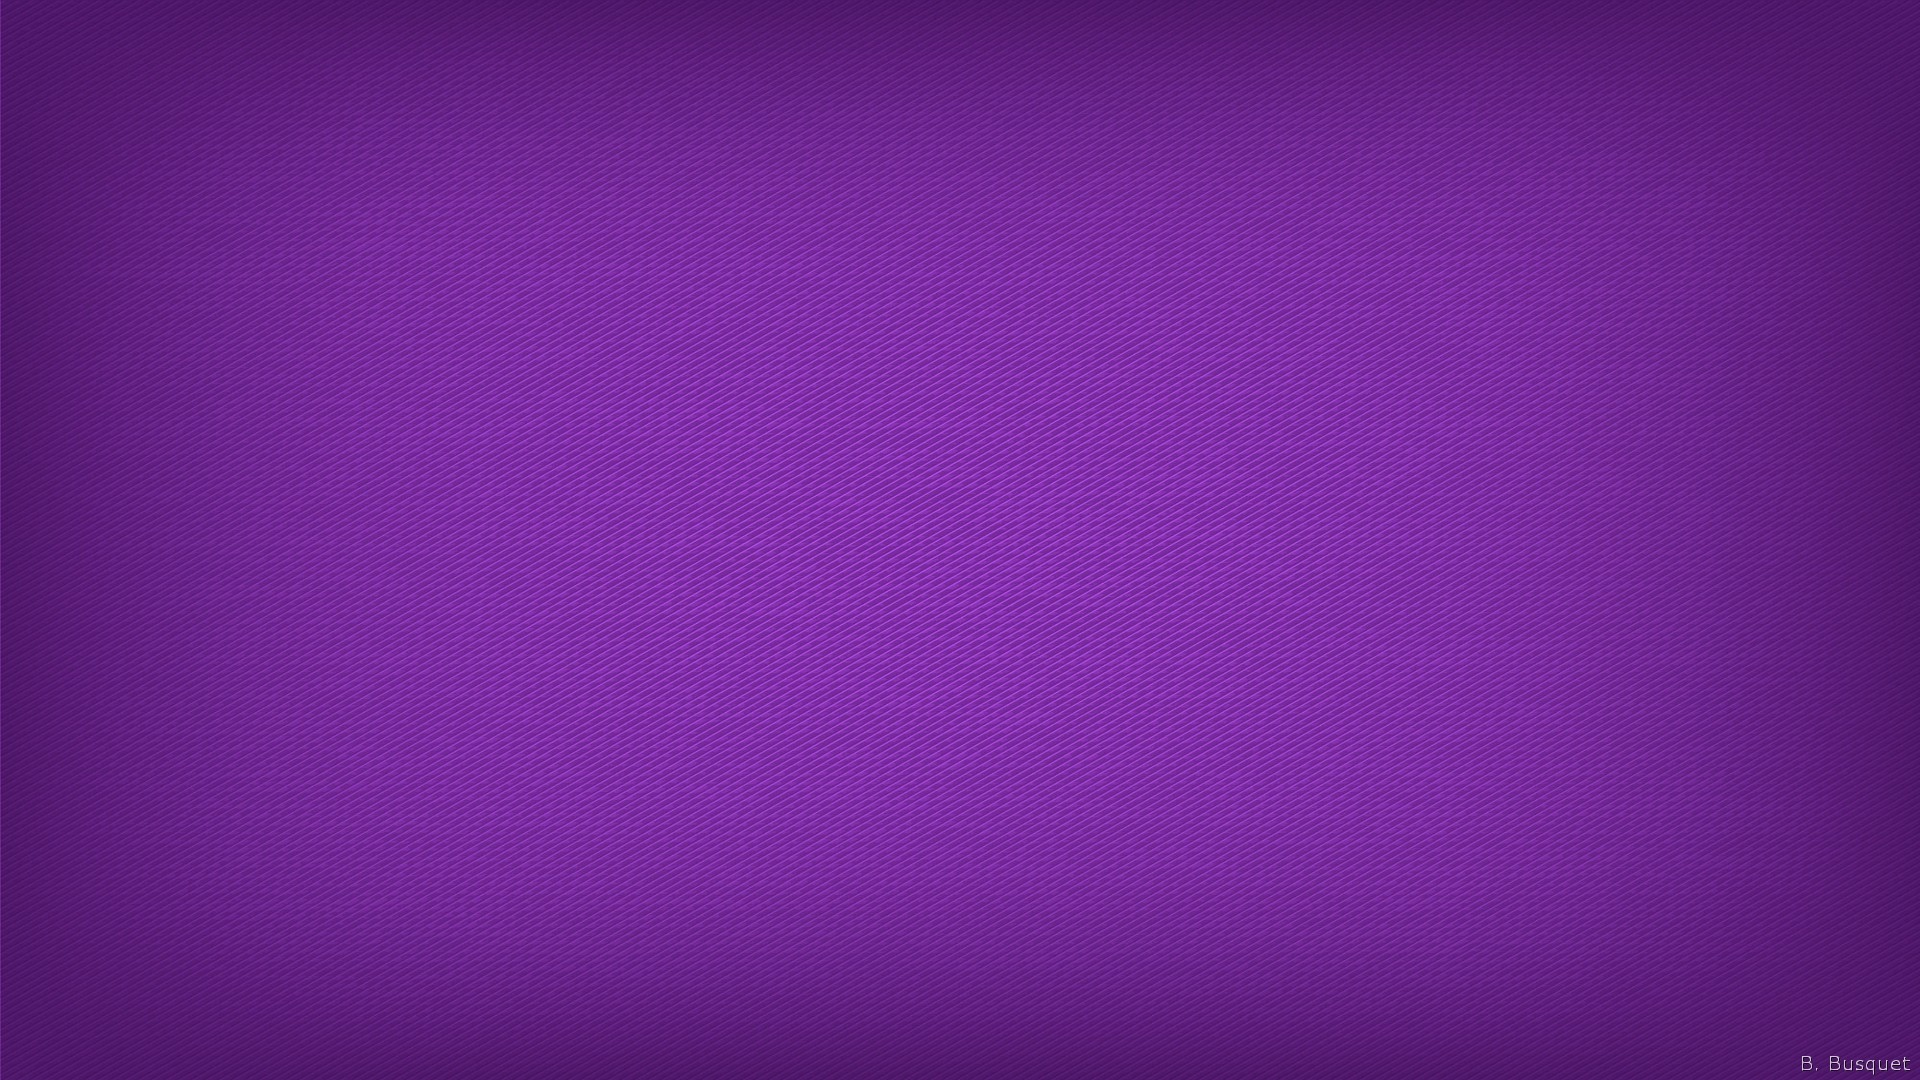 1920x1080 Purple Wallpapers wallpaper hd